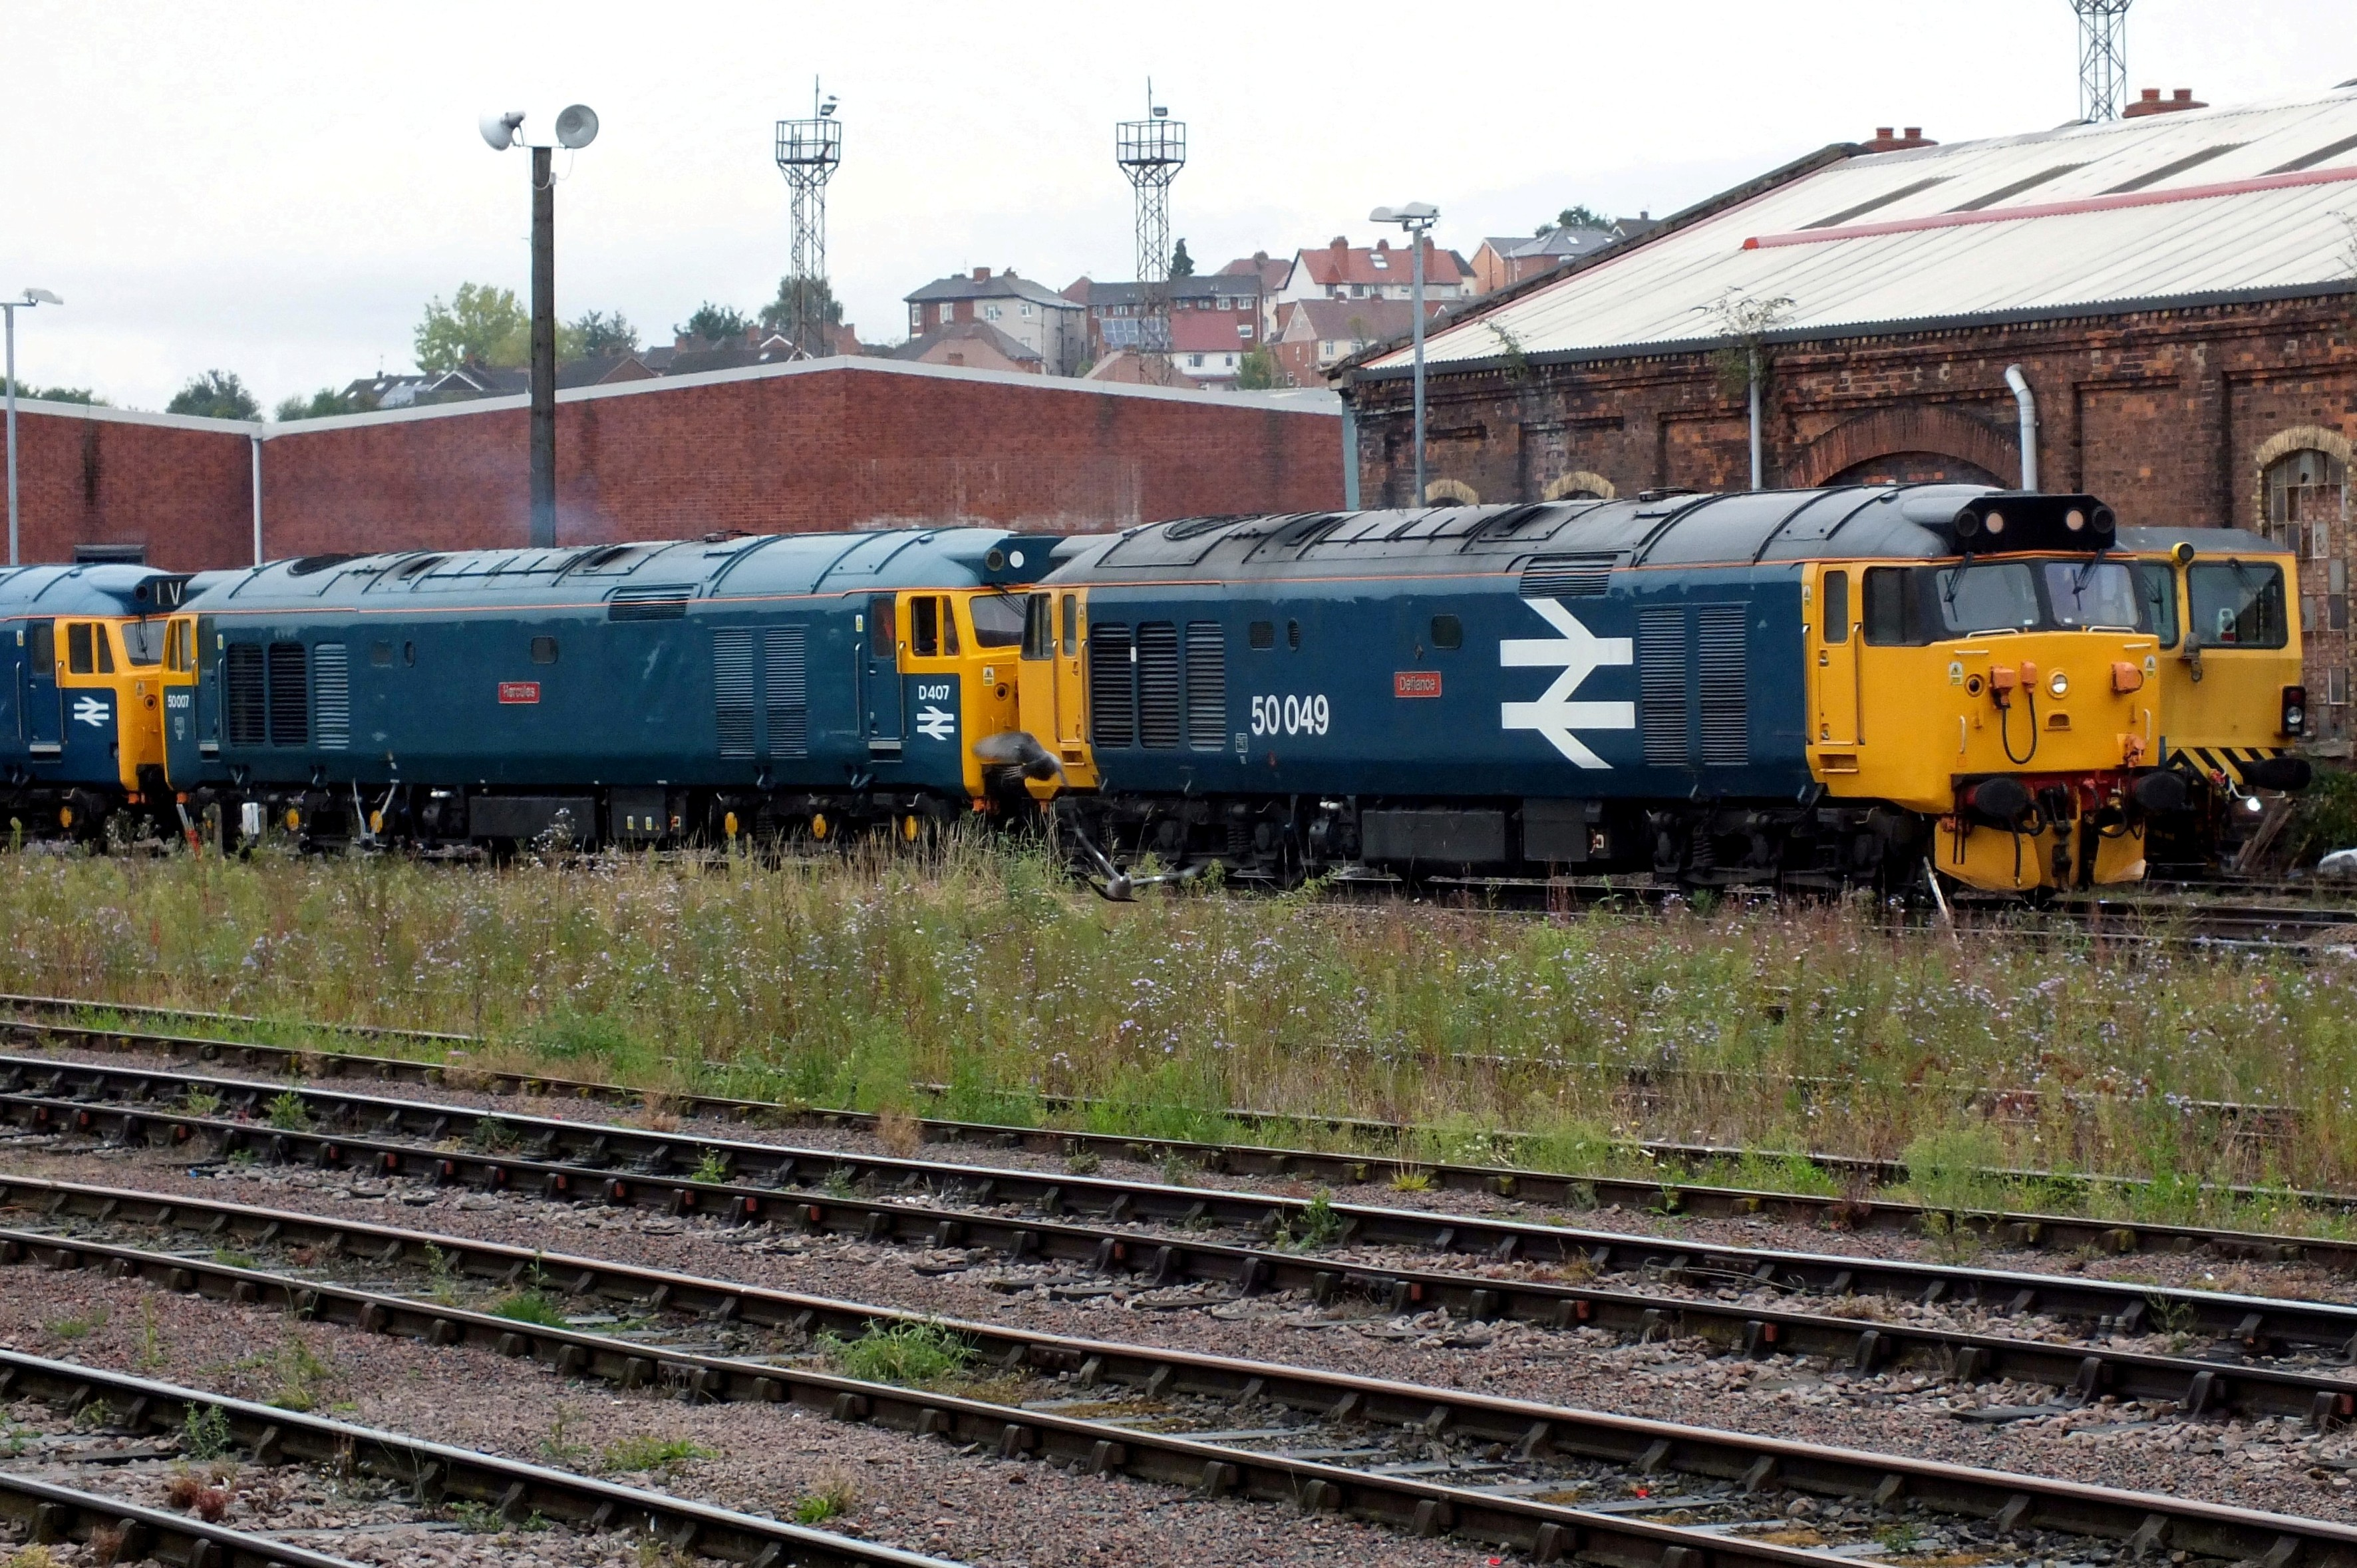 30 August 2017 Shrub Hill 104.jpg